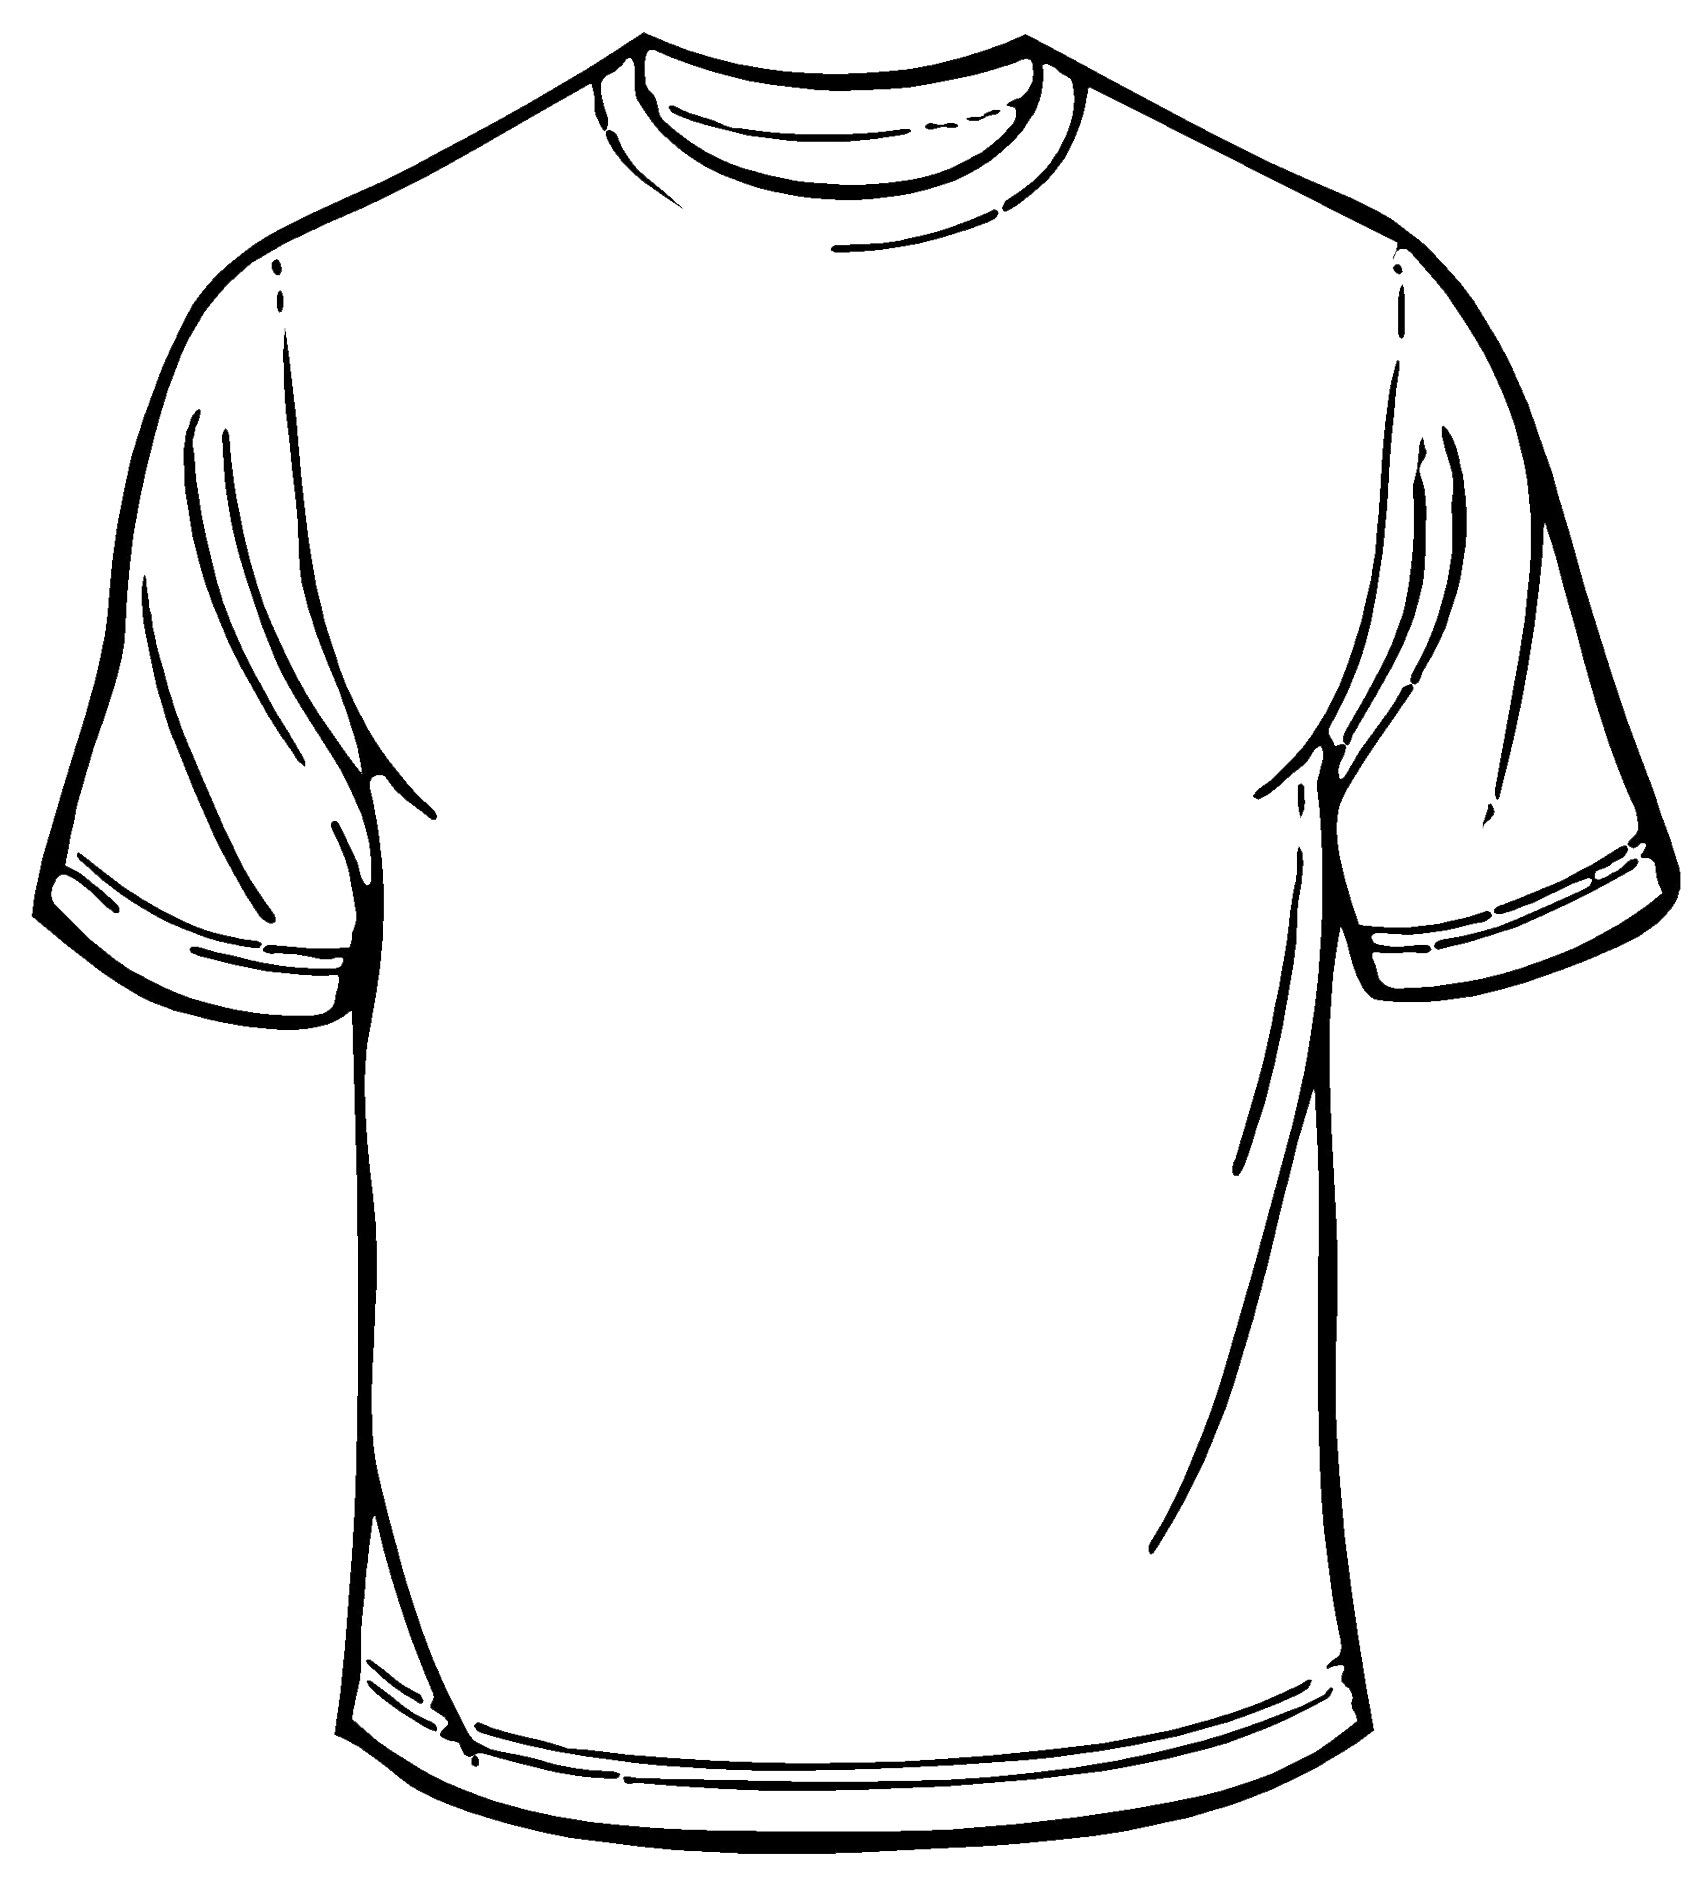 Free Blank Tshirt, Download Free Clip Art, Free Clip Art on.